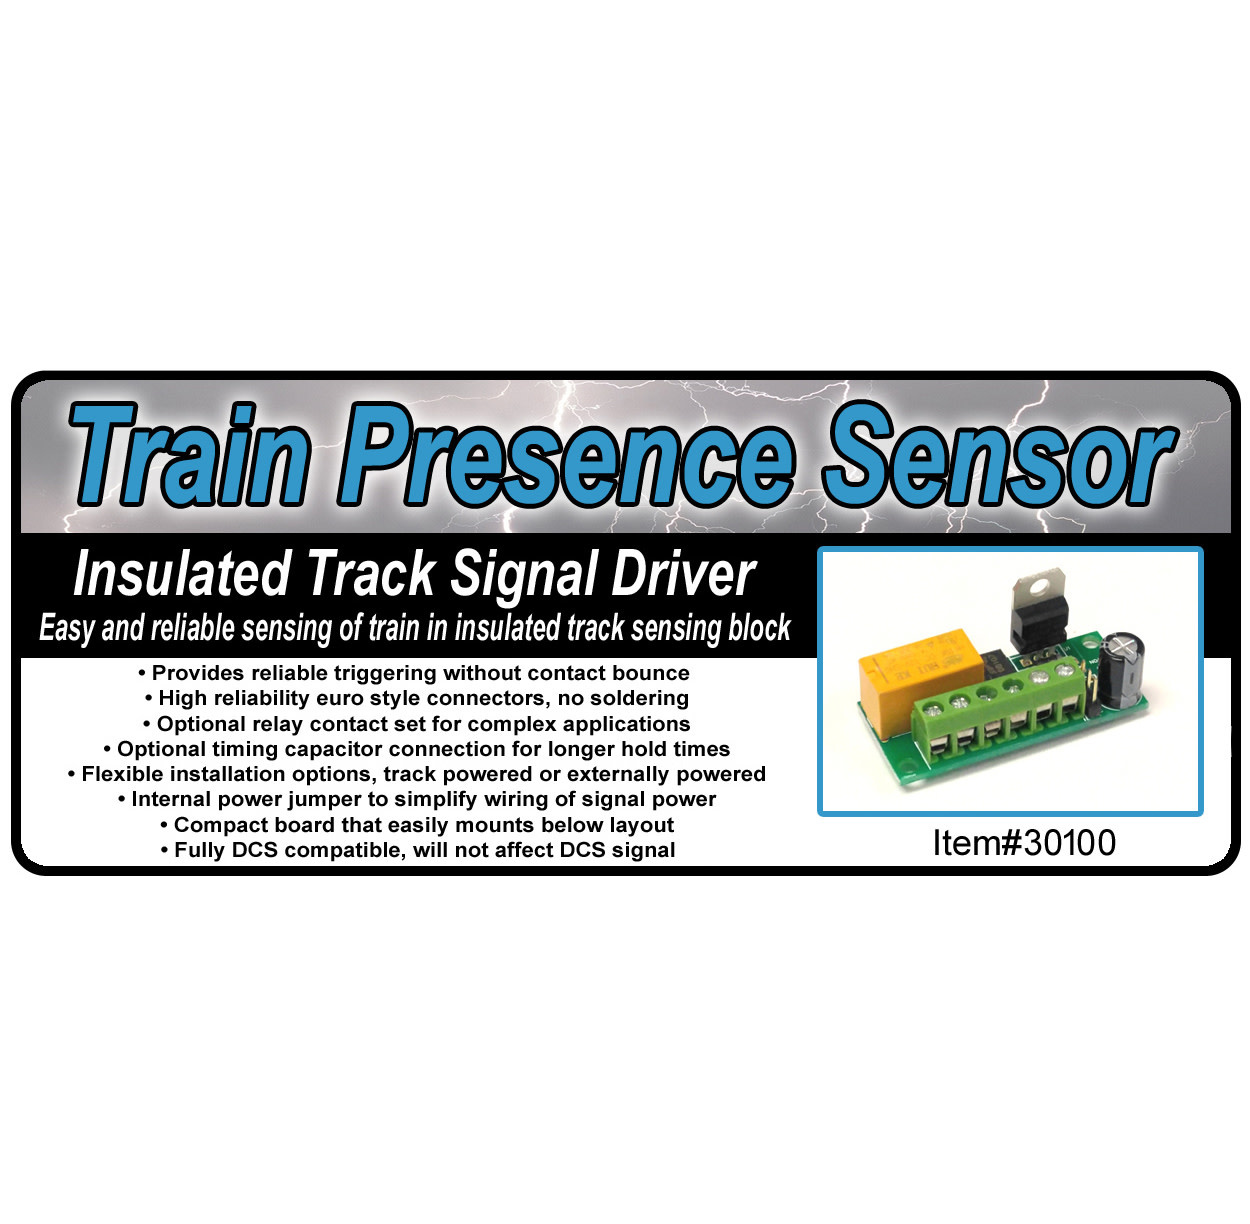 hight resolution of jw a 30100 train presence sensor for insulated track